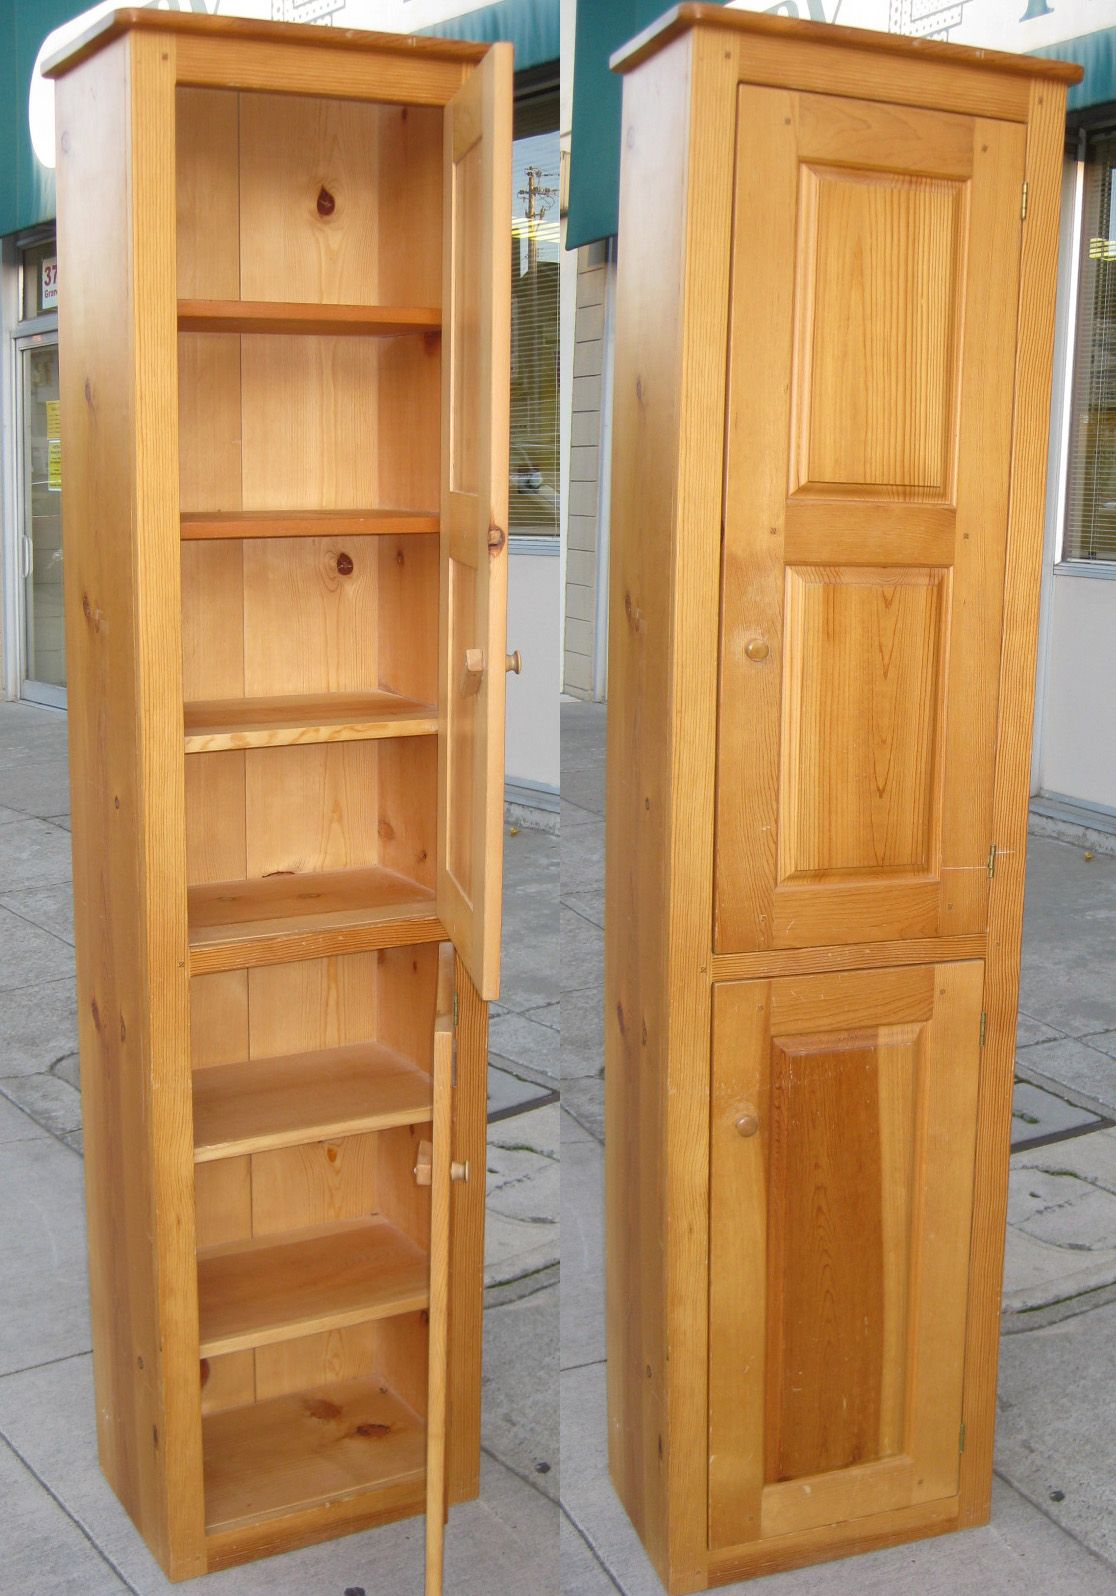 Tall Narrow Cabinet With Doors The Pictures Below Show The Cabinet With Doors Open And Closed Pantry Cabinet Cabinet Tall Kitchen Cabinets